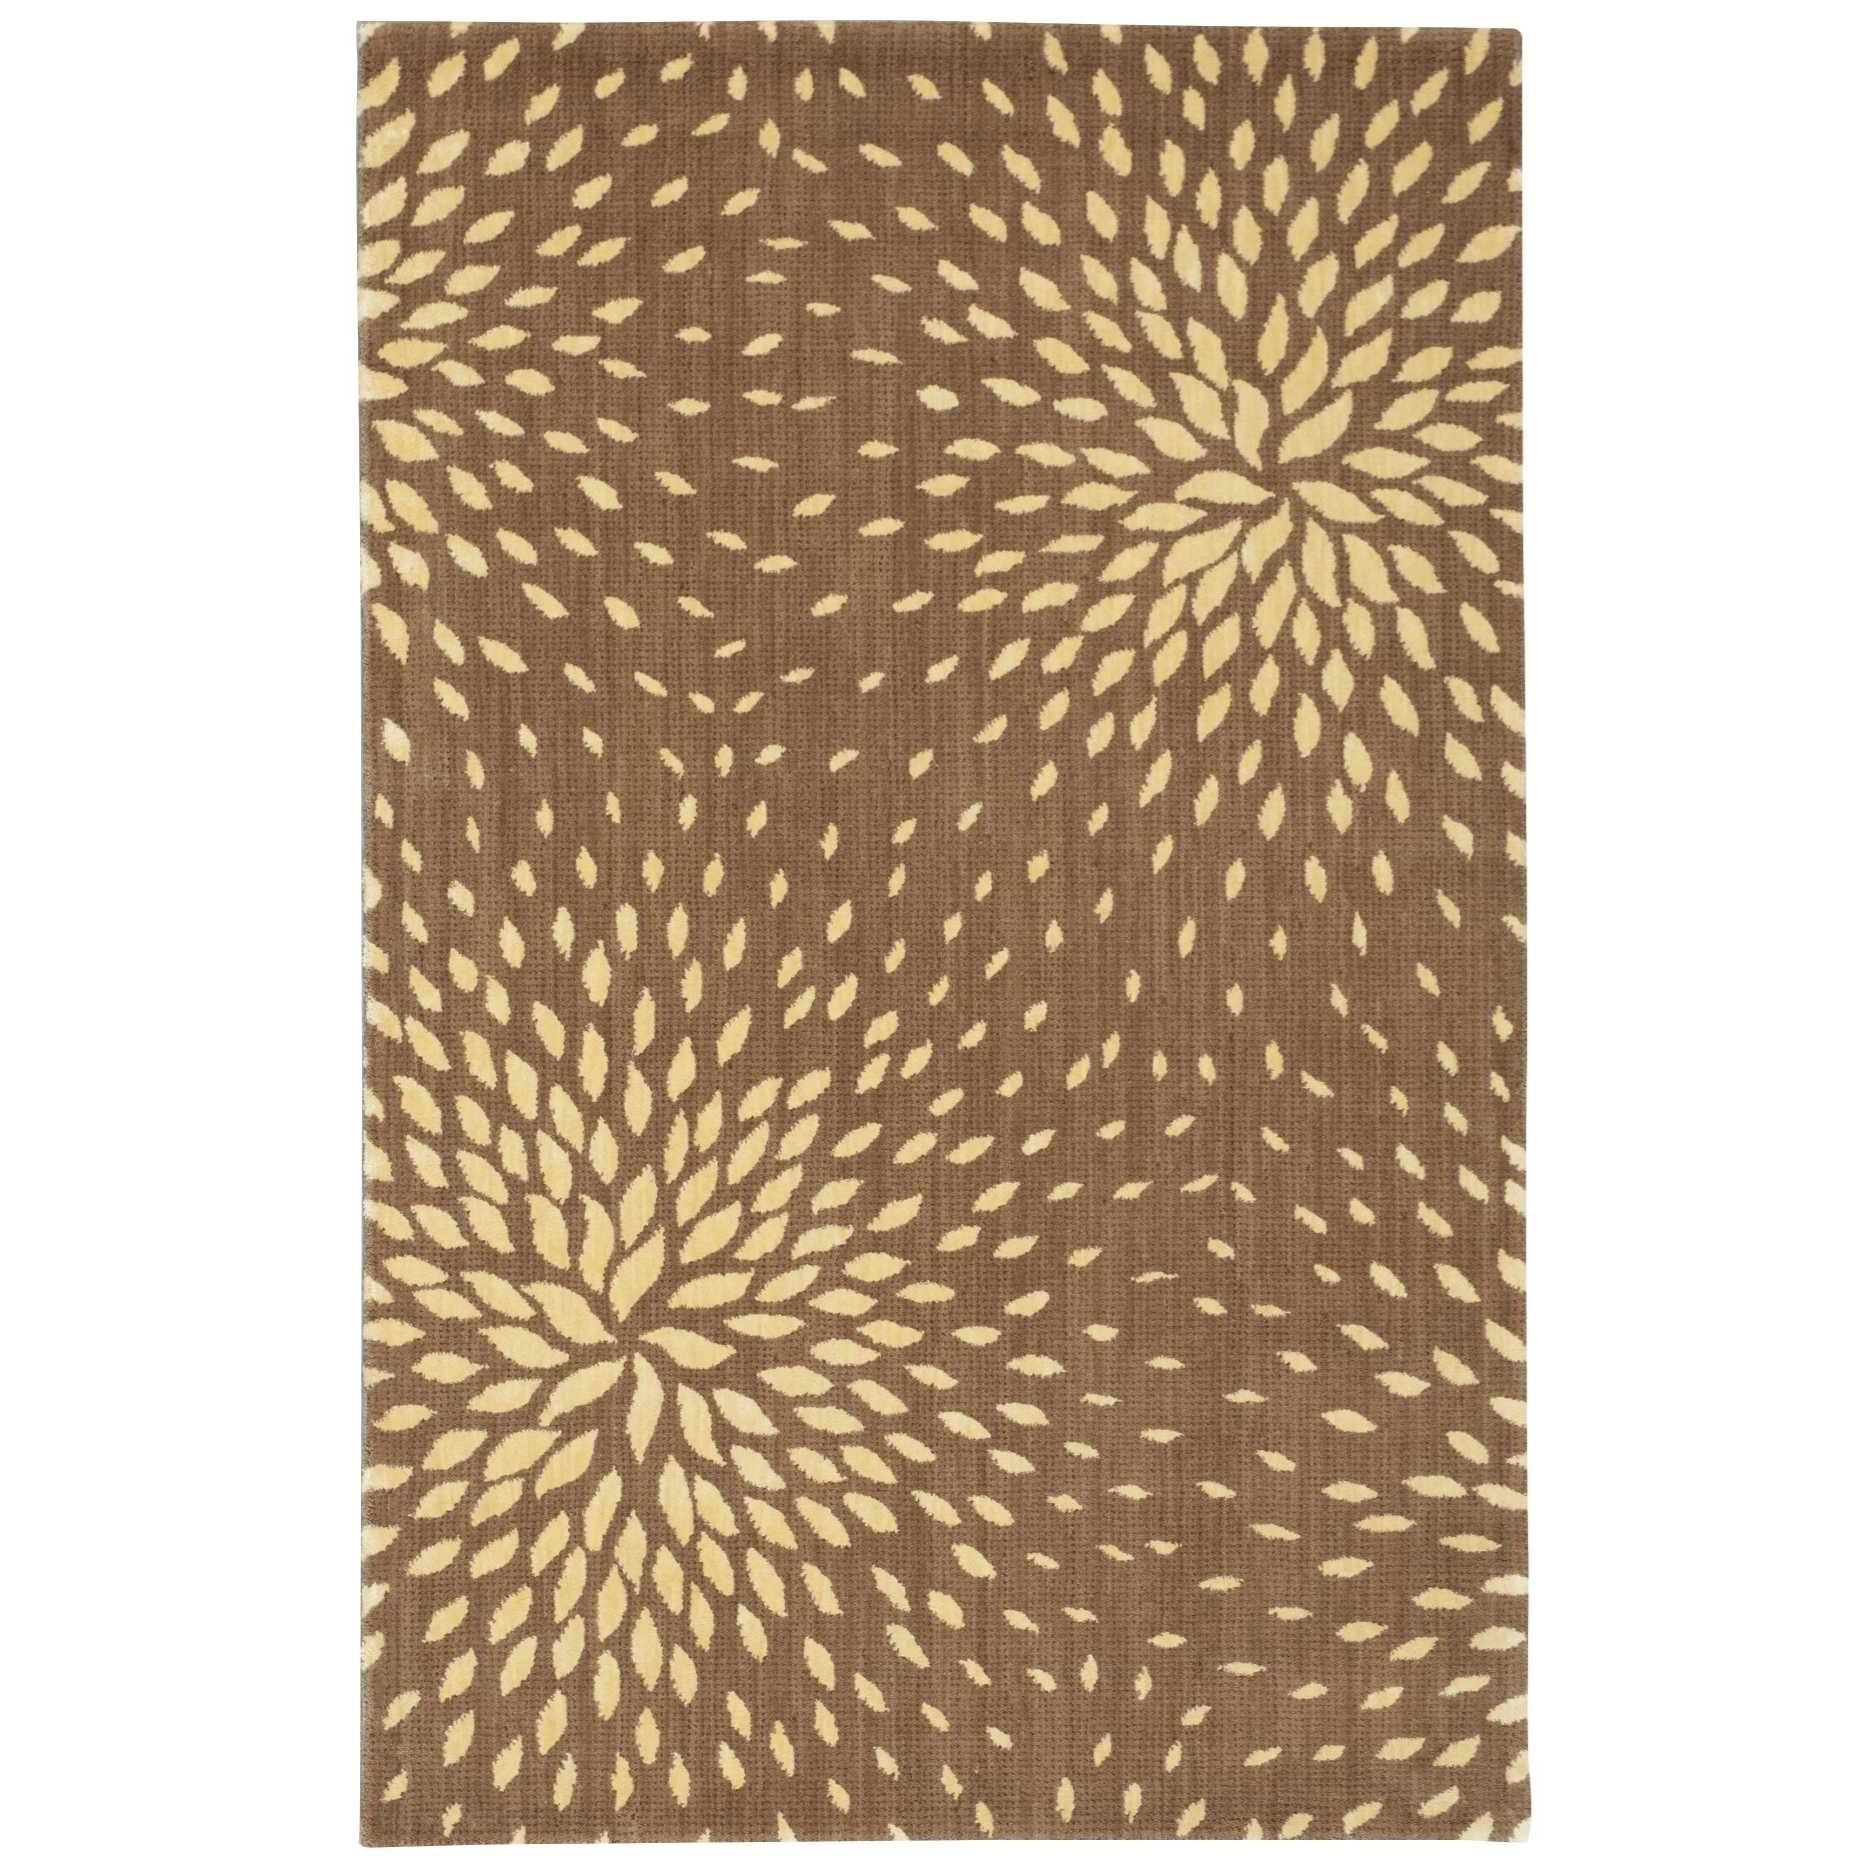 """Capri 3'6"""" x 5'6"""" Mocha Rectangle Rug by Nourison at Home Collections Furniture"""